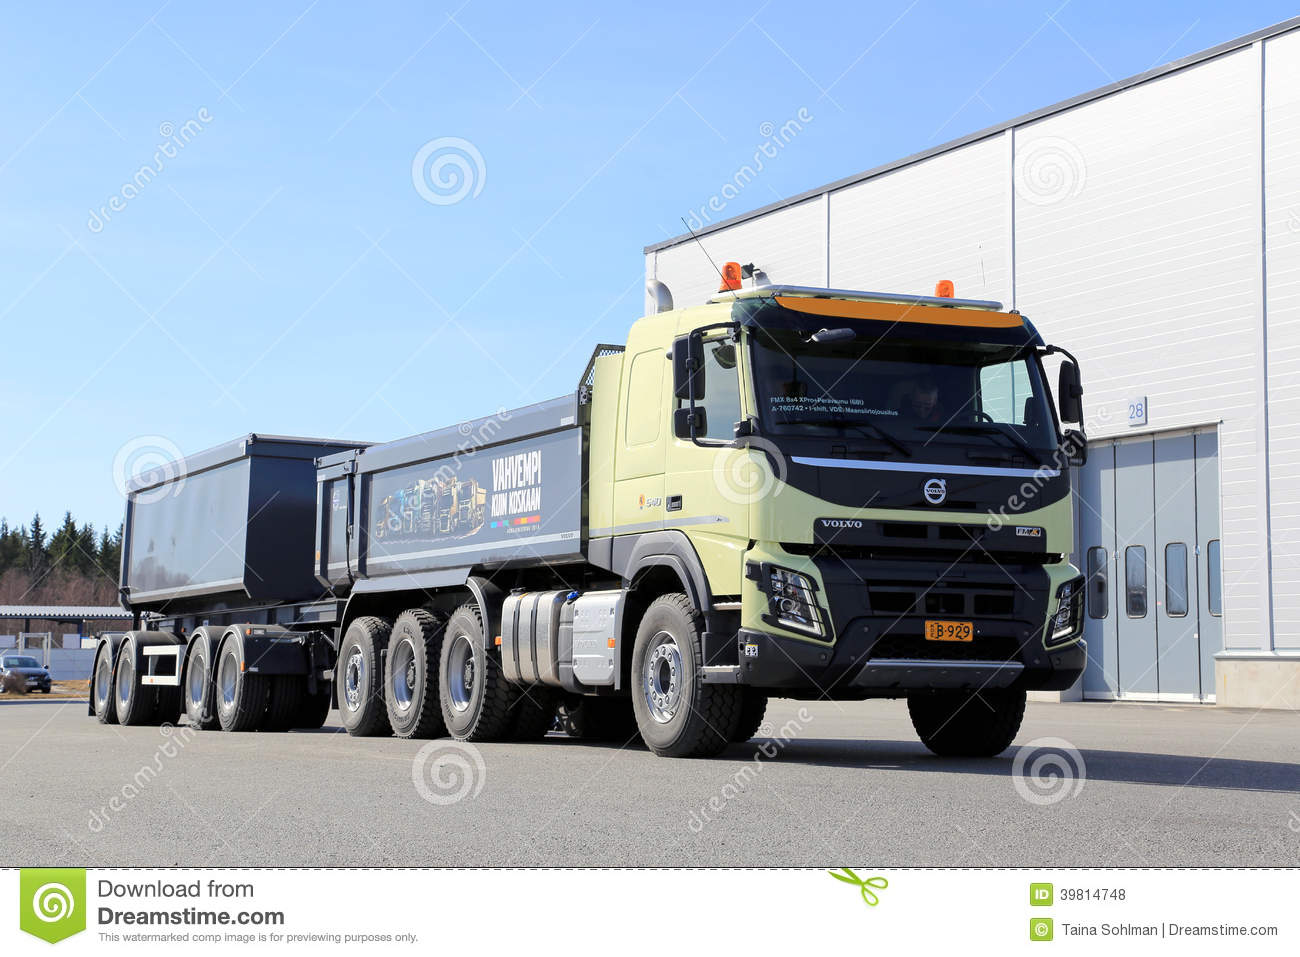 Wards Towing Century Rotator Wrap besides Truck Driver Clip Art together with 148986 Towing Vector Icons also ViewPrd additionally Kenworth W900 B Aerodyne 265366927. on tow truck graphics